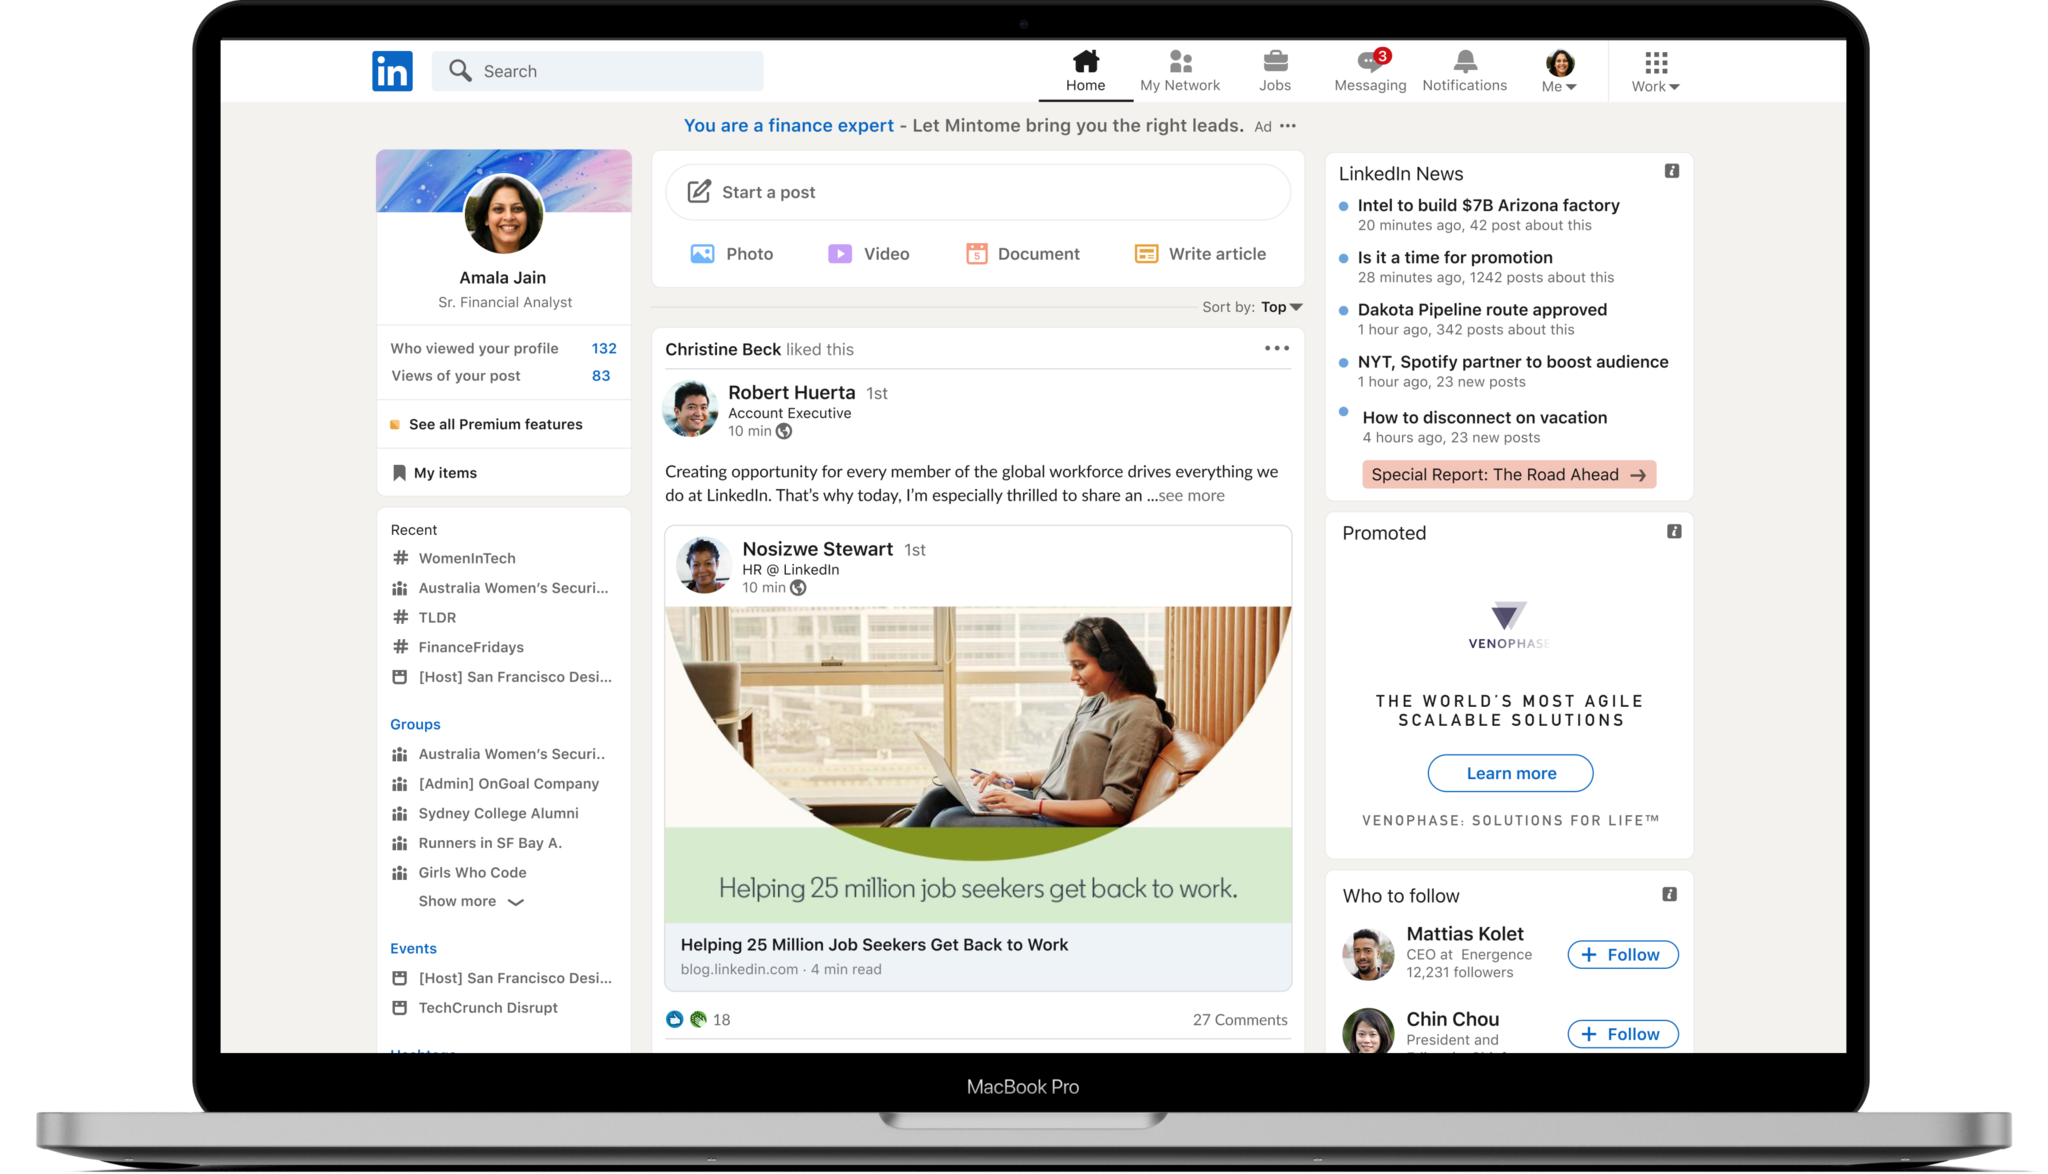 LinkedIn Rolls Out Redesign With Stories + More